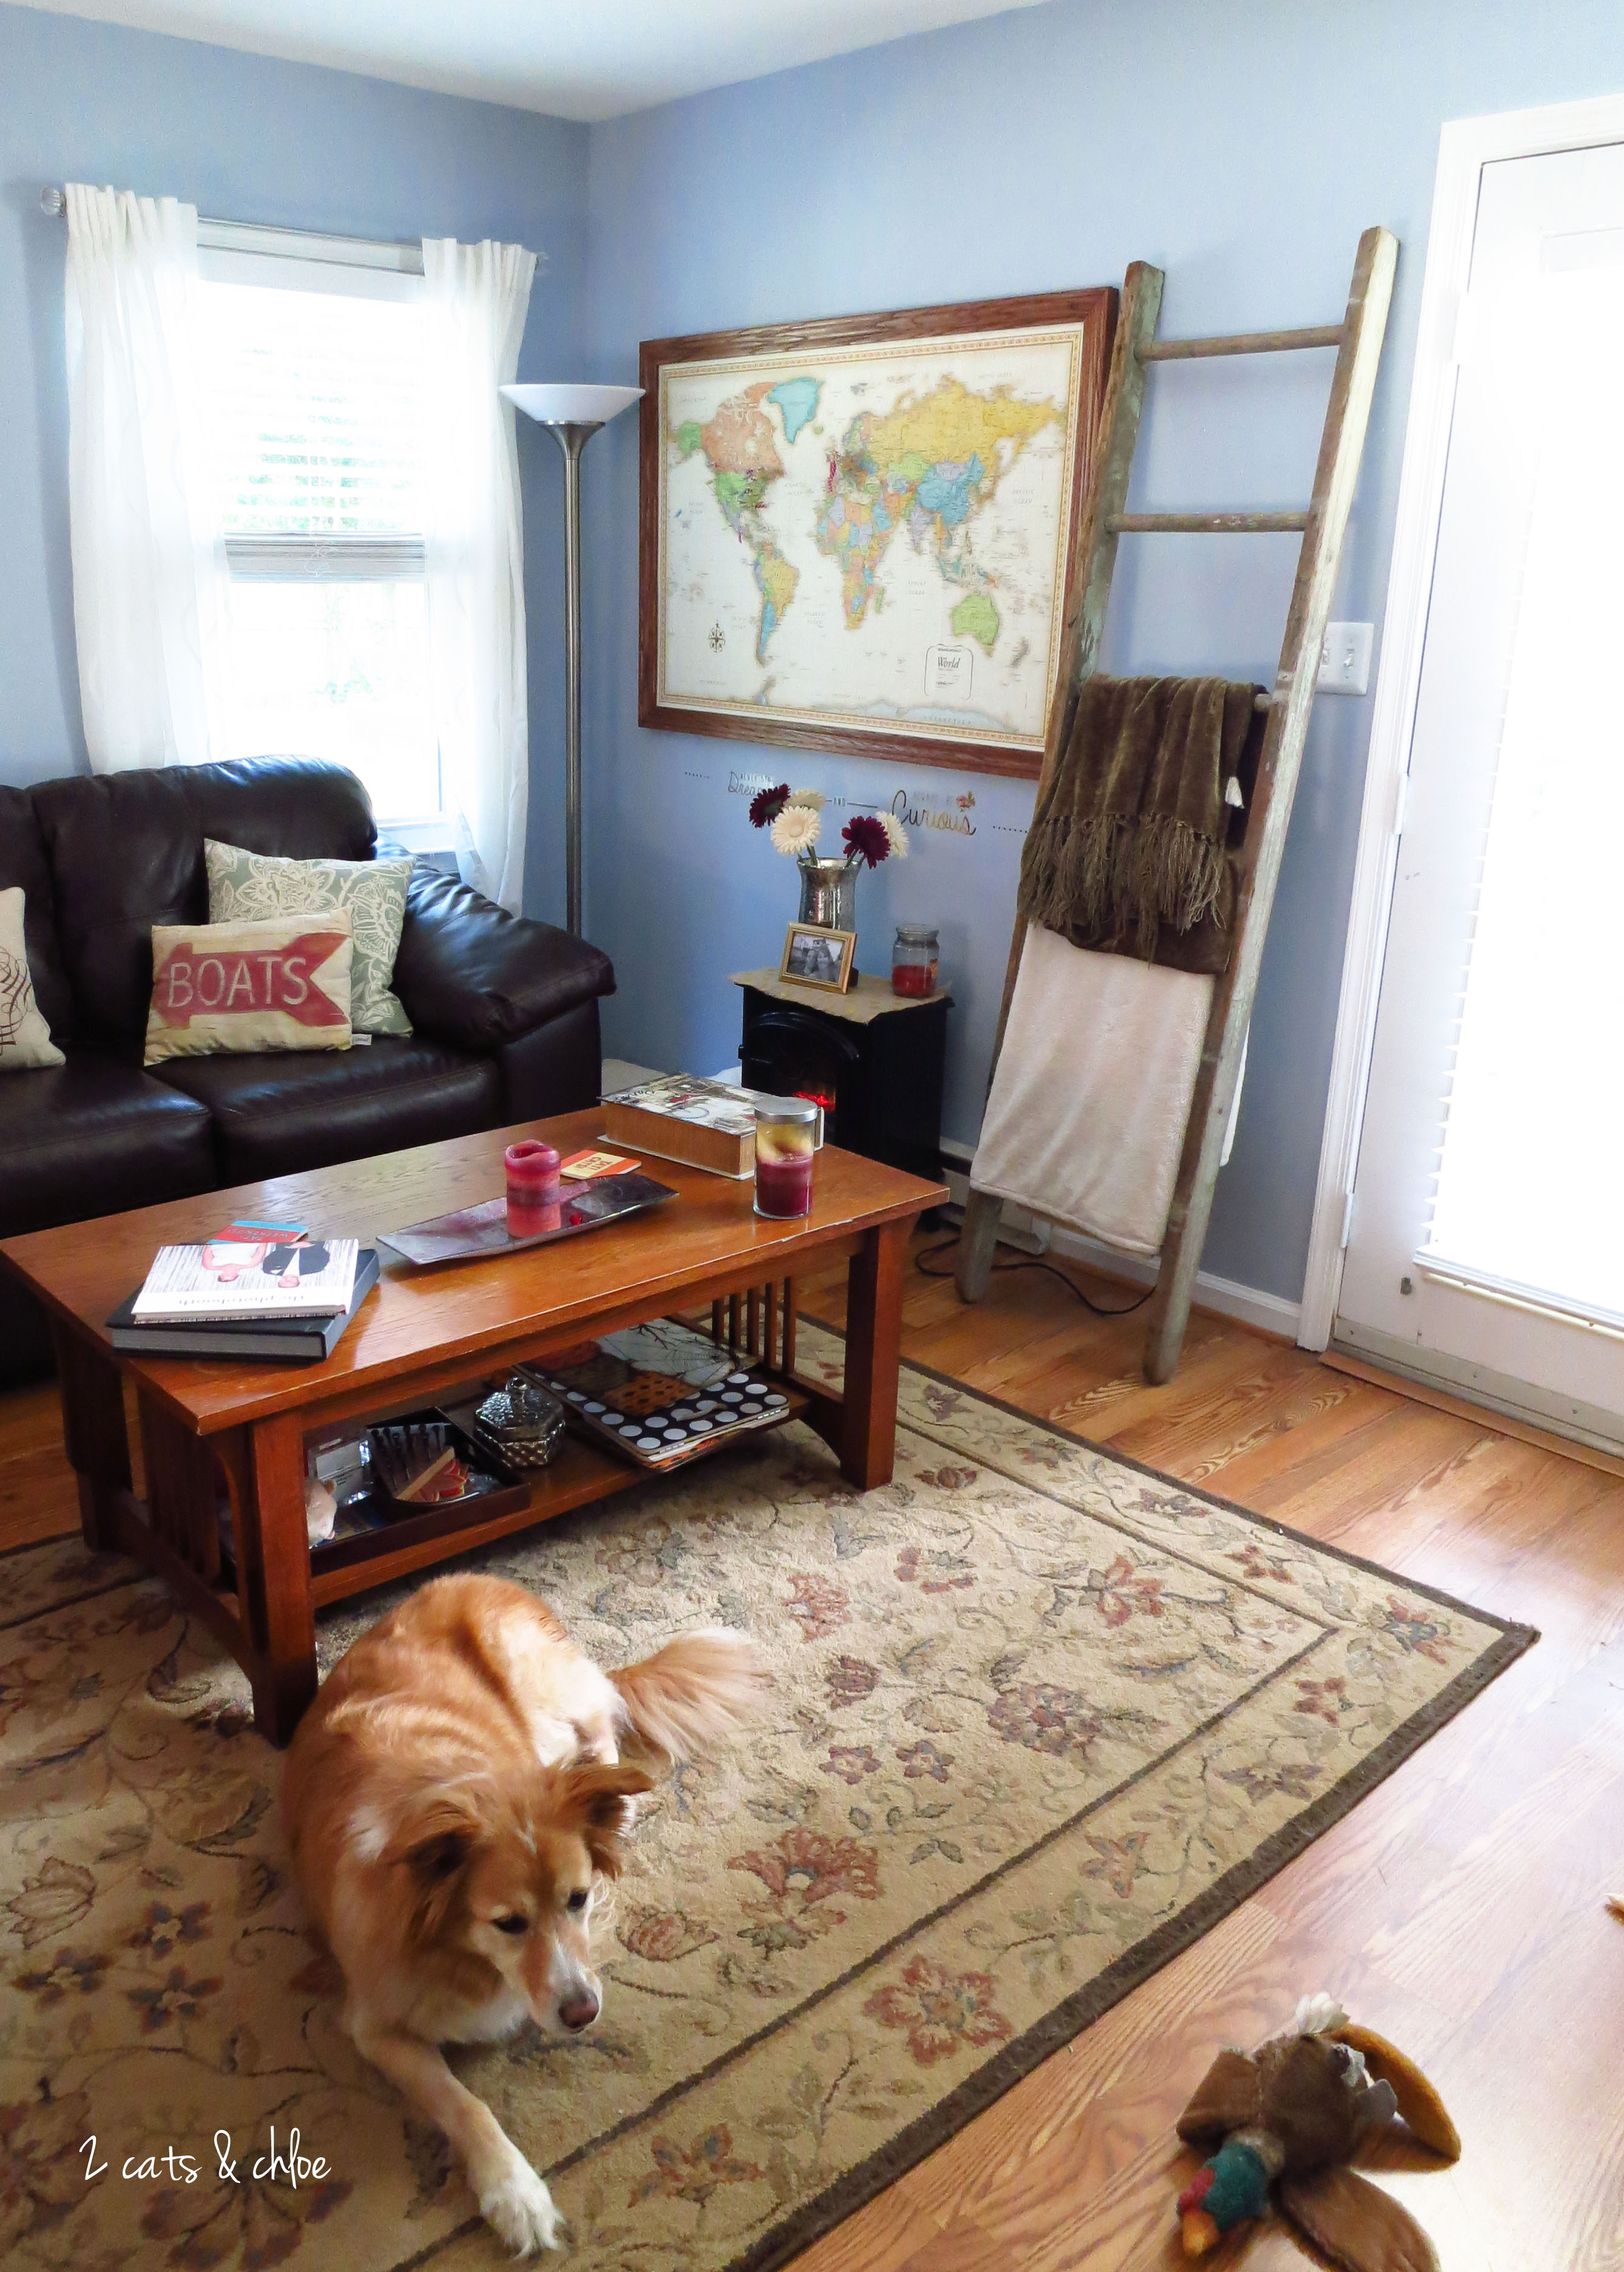 CELETE SOUTHERN: Home Map Decoration - 2 Cats and Chloe on